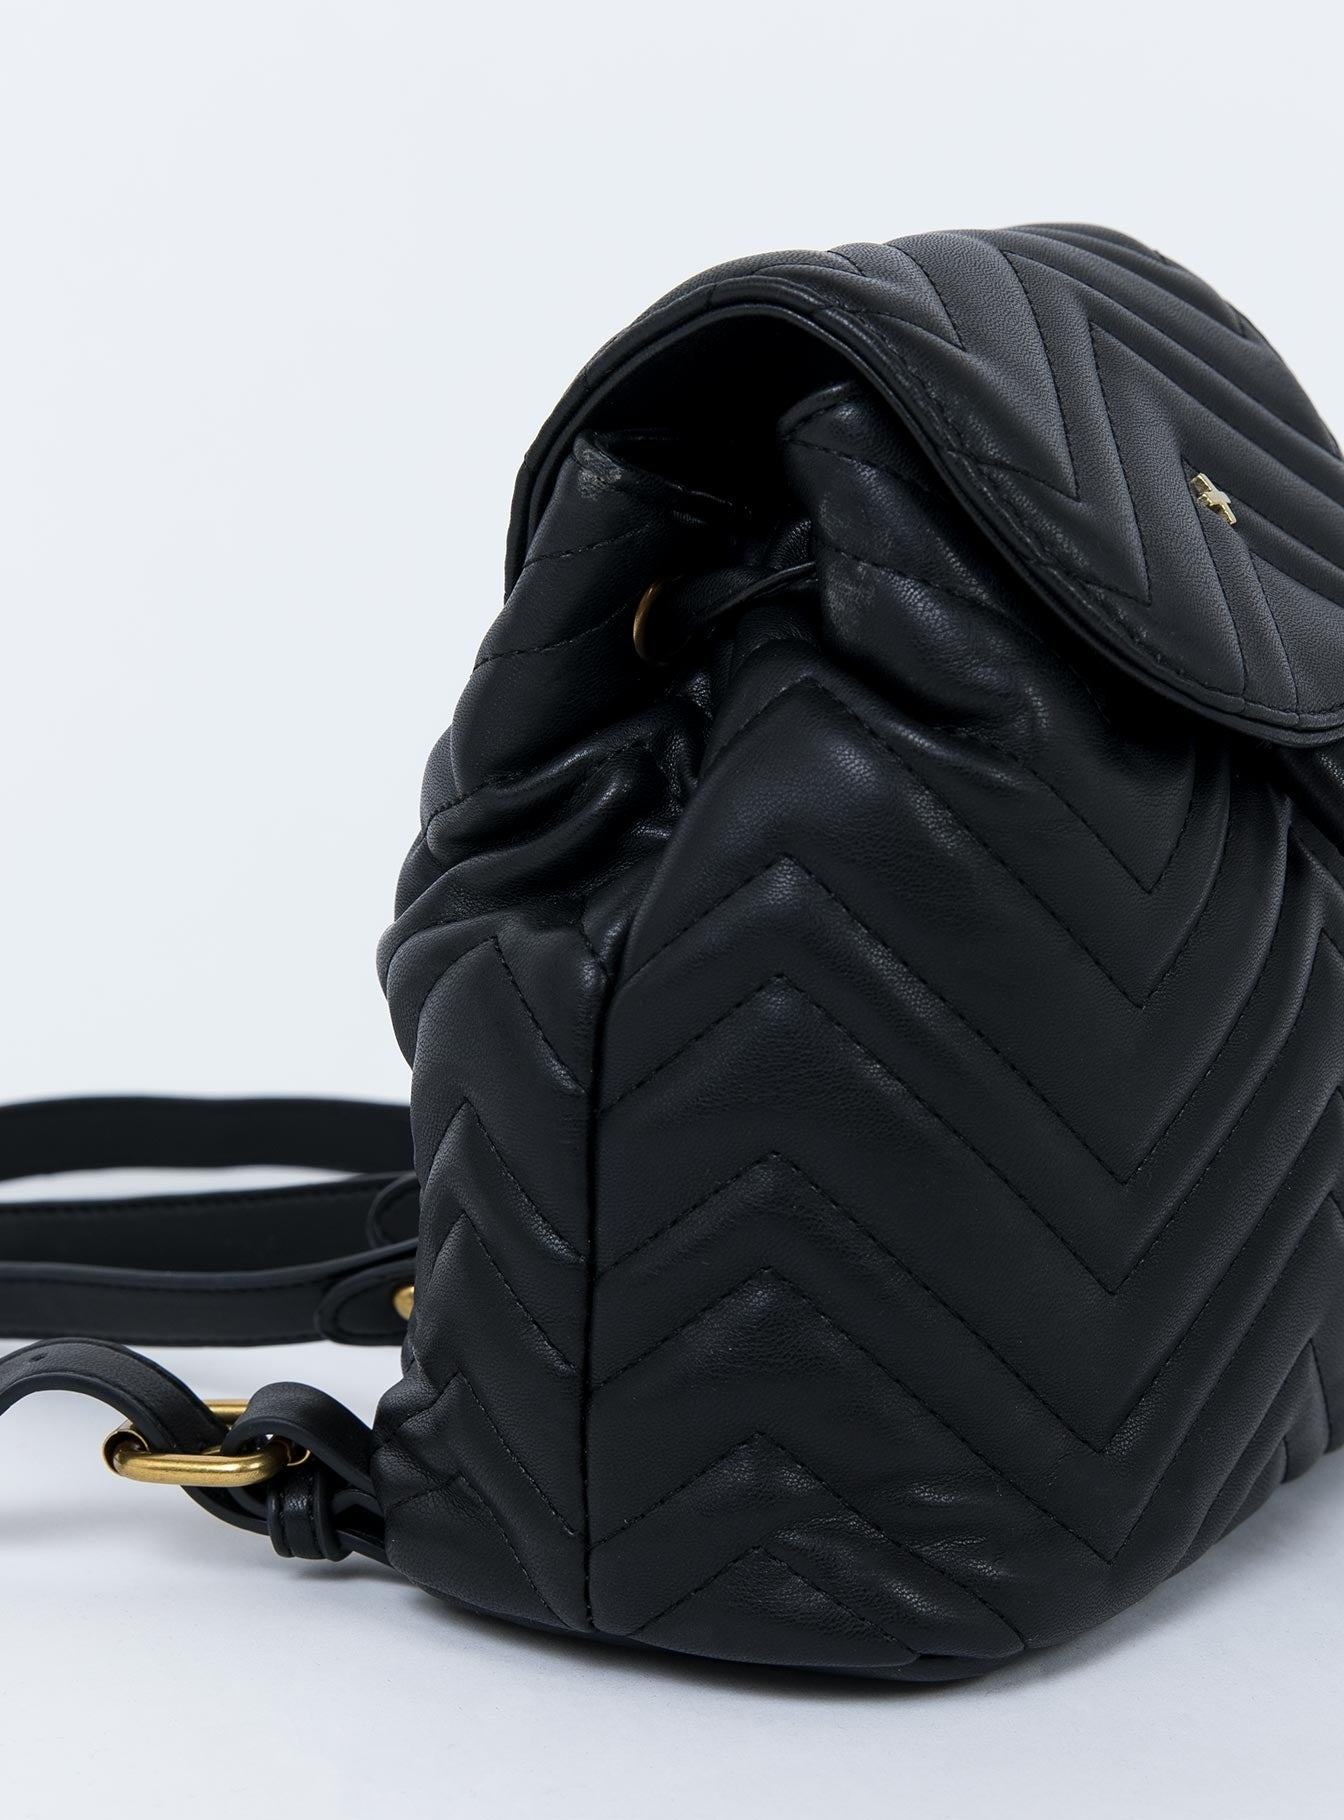 Peta & Jain Gypsy Backpack Black